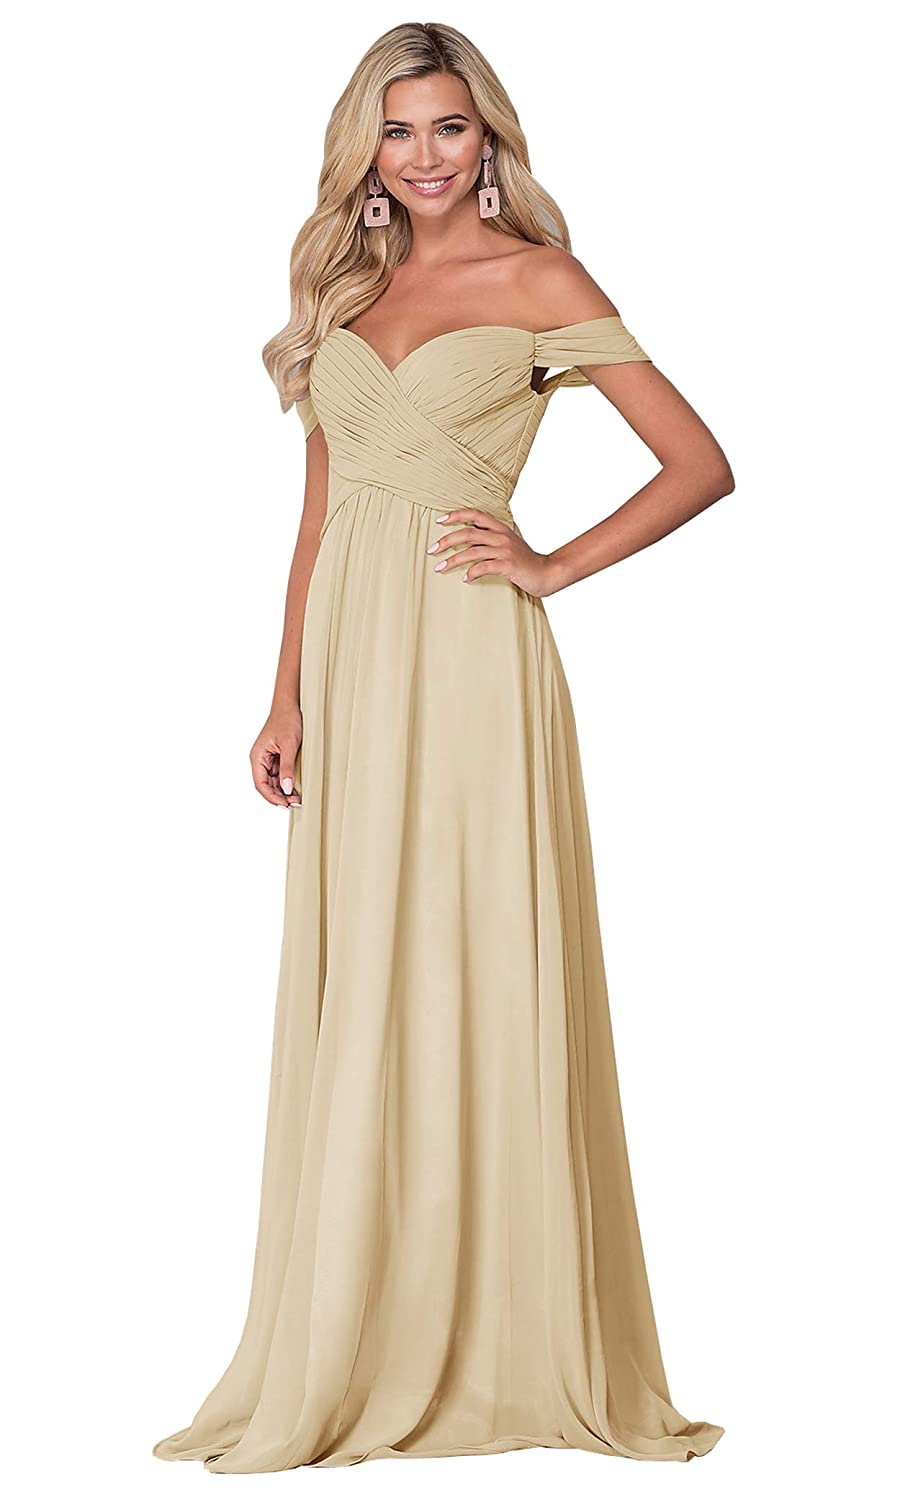 Lianai Womens Off The Shoulder Long Prom Dress Ruched Bodice A-line Formal Party Gown